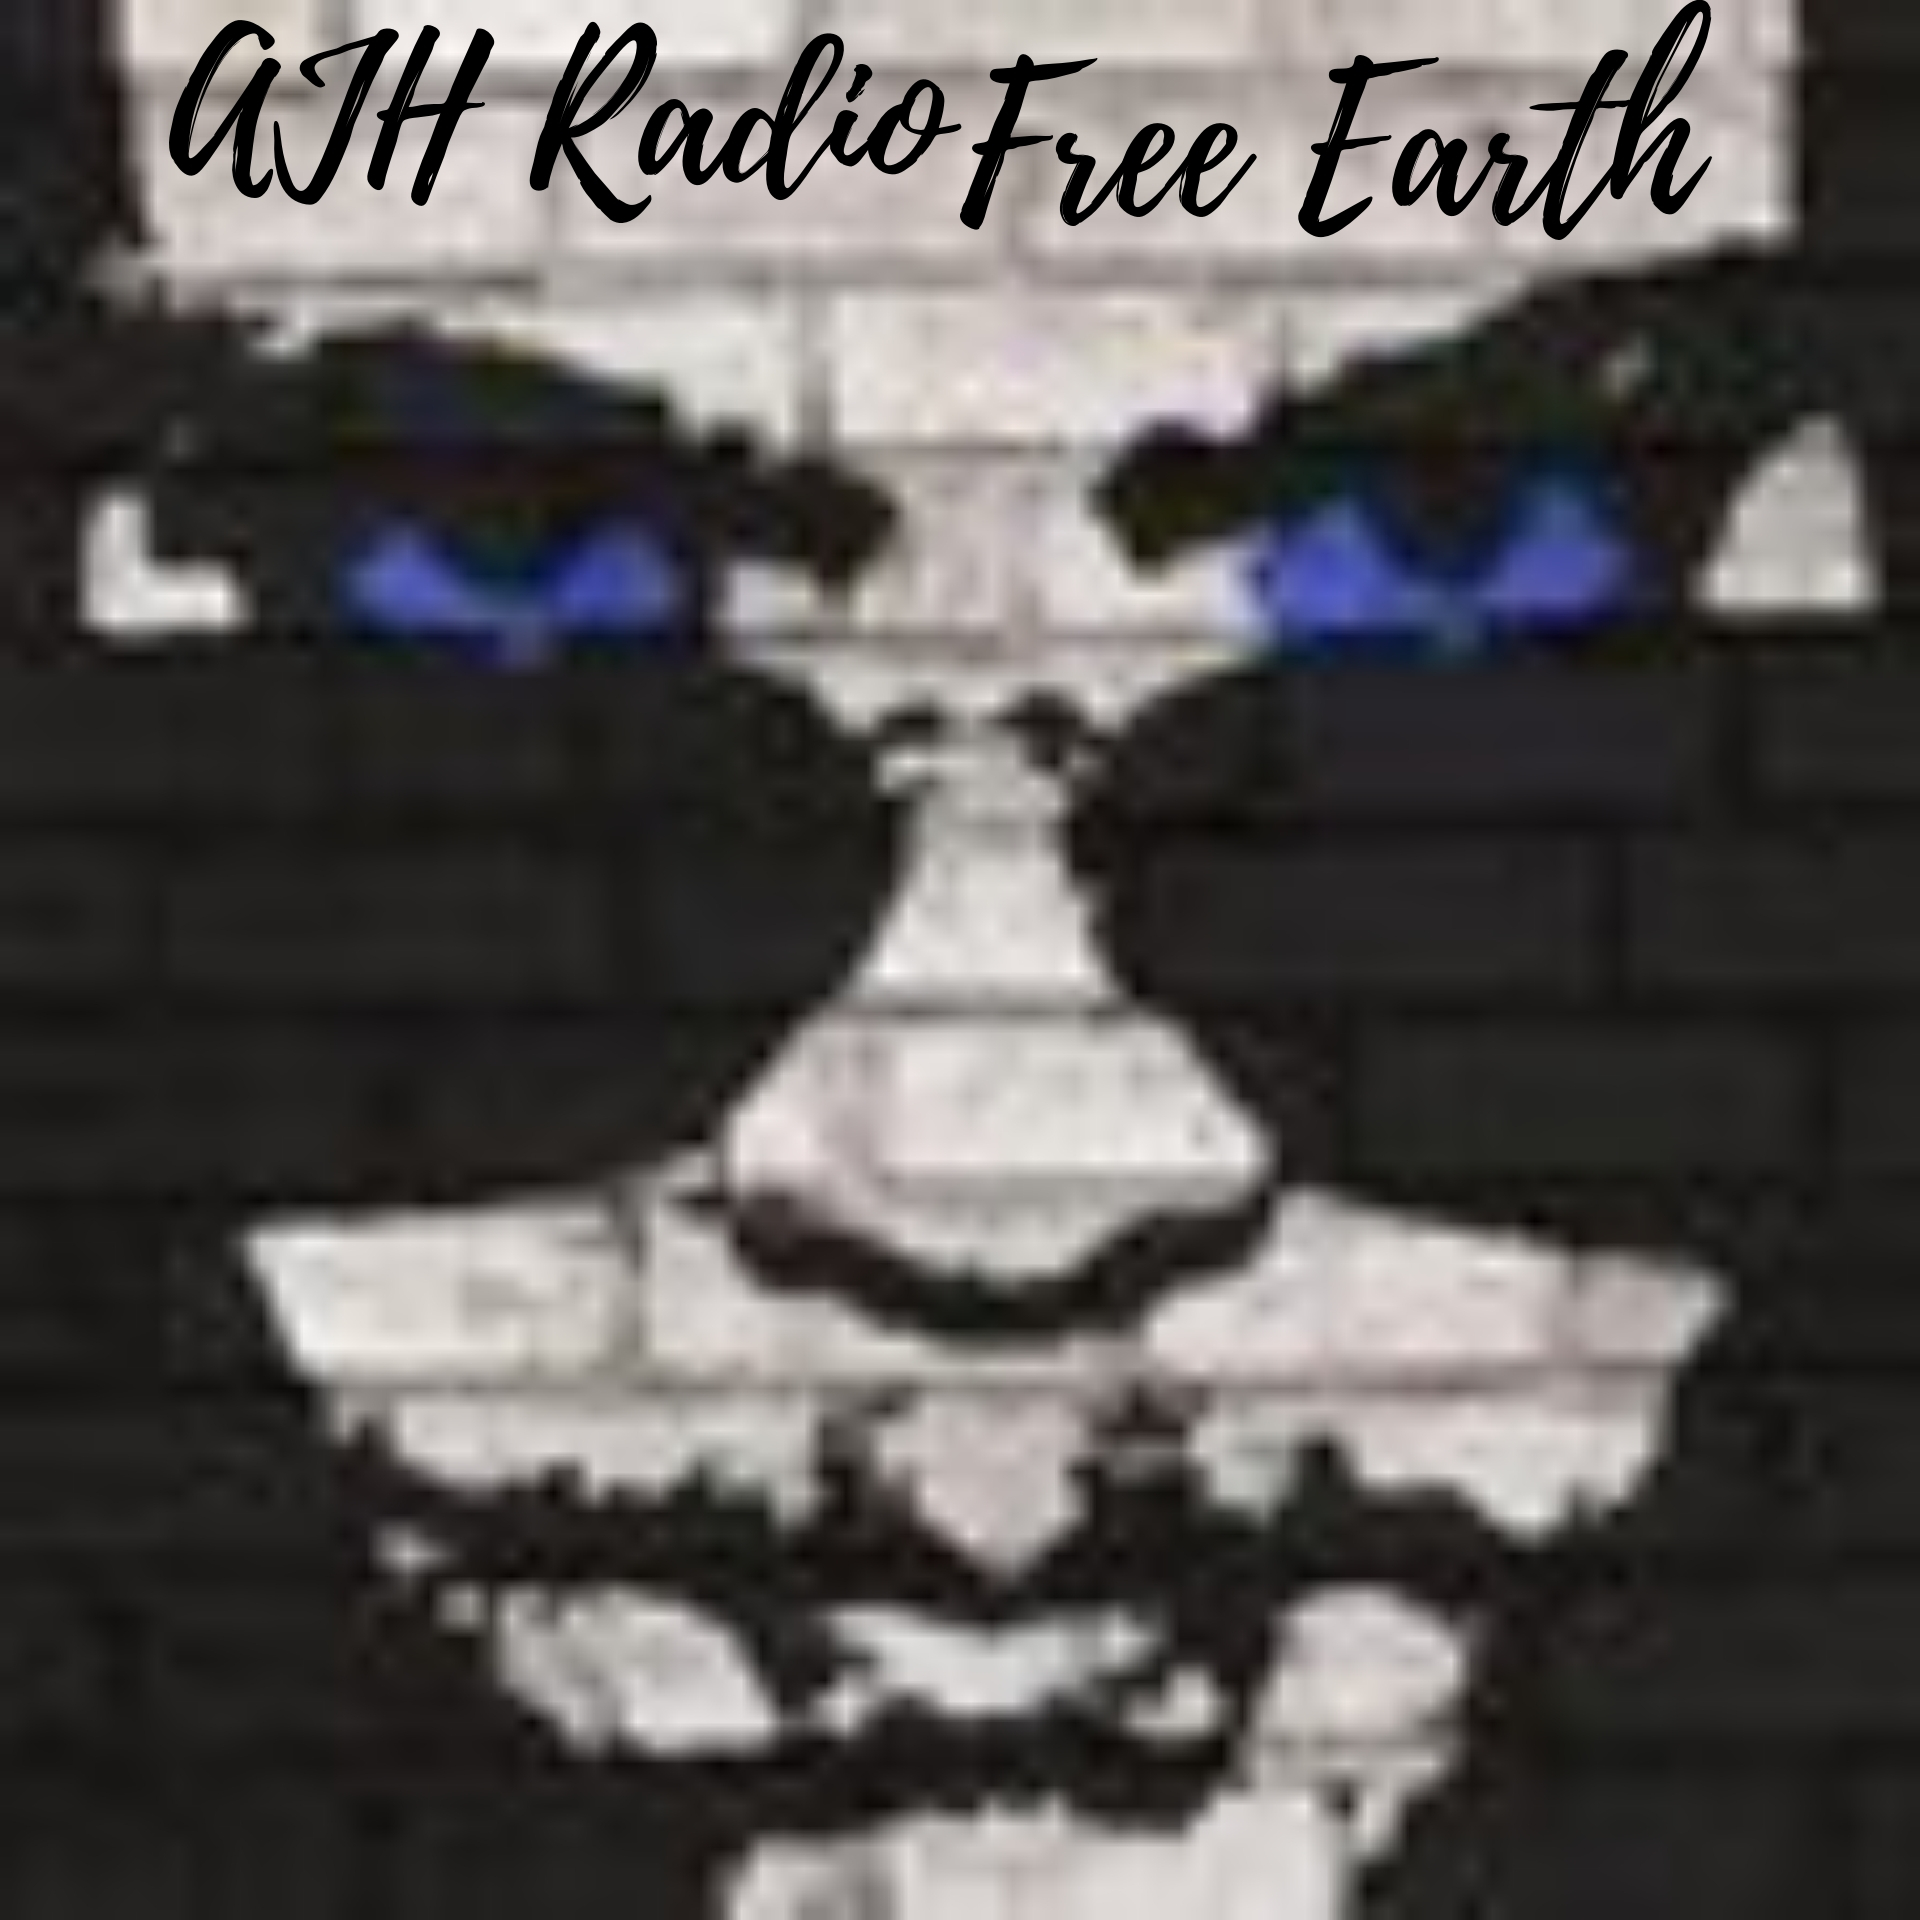 AJH Radio Free Earth